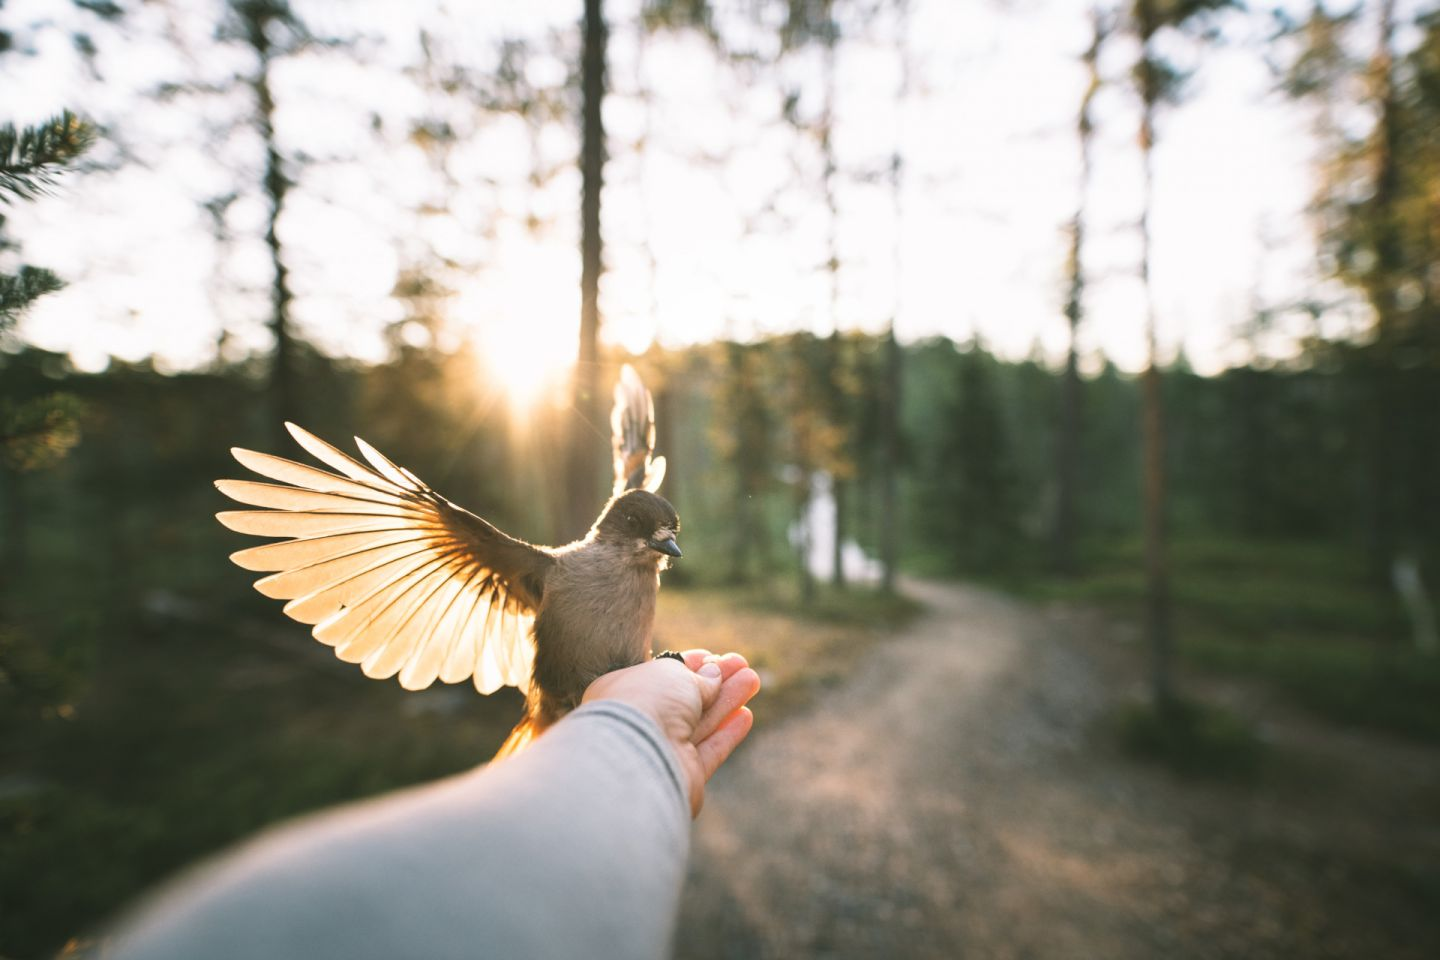 A Siberian jay lands on an outstretched hand in Finnish Lapland